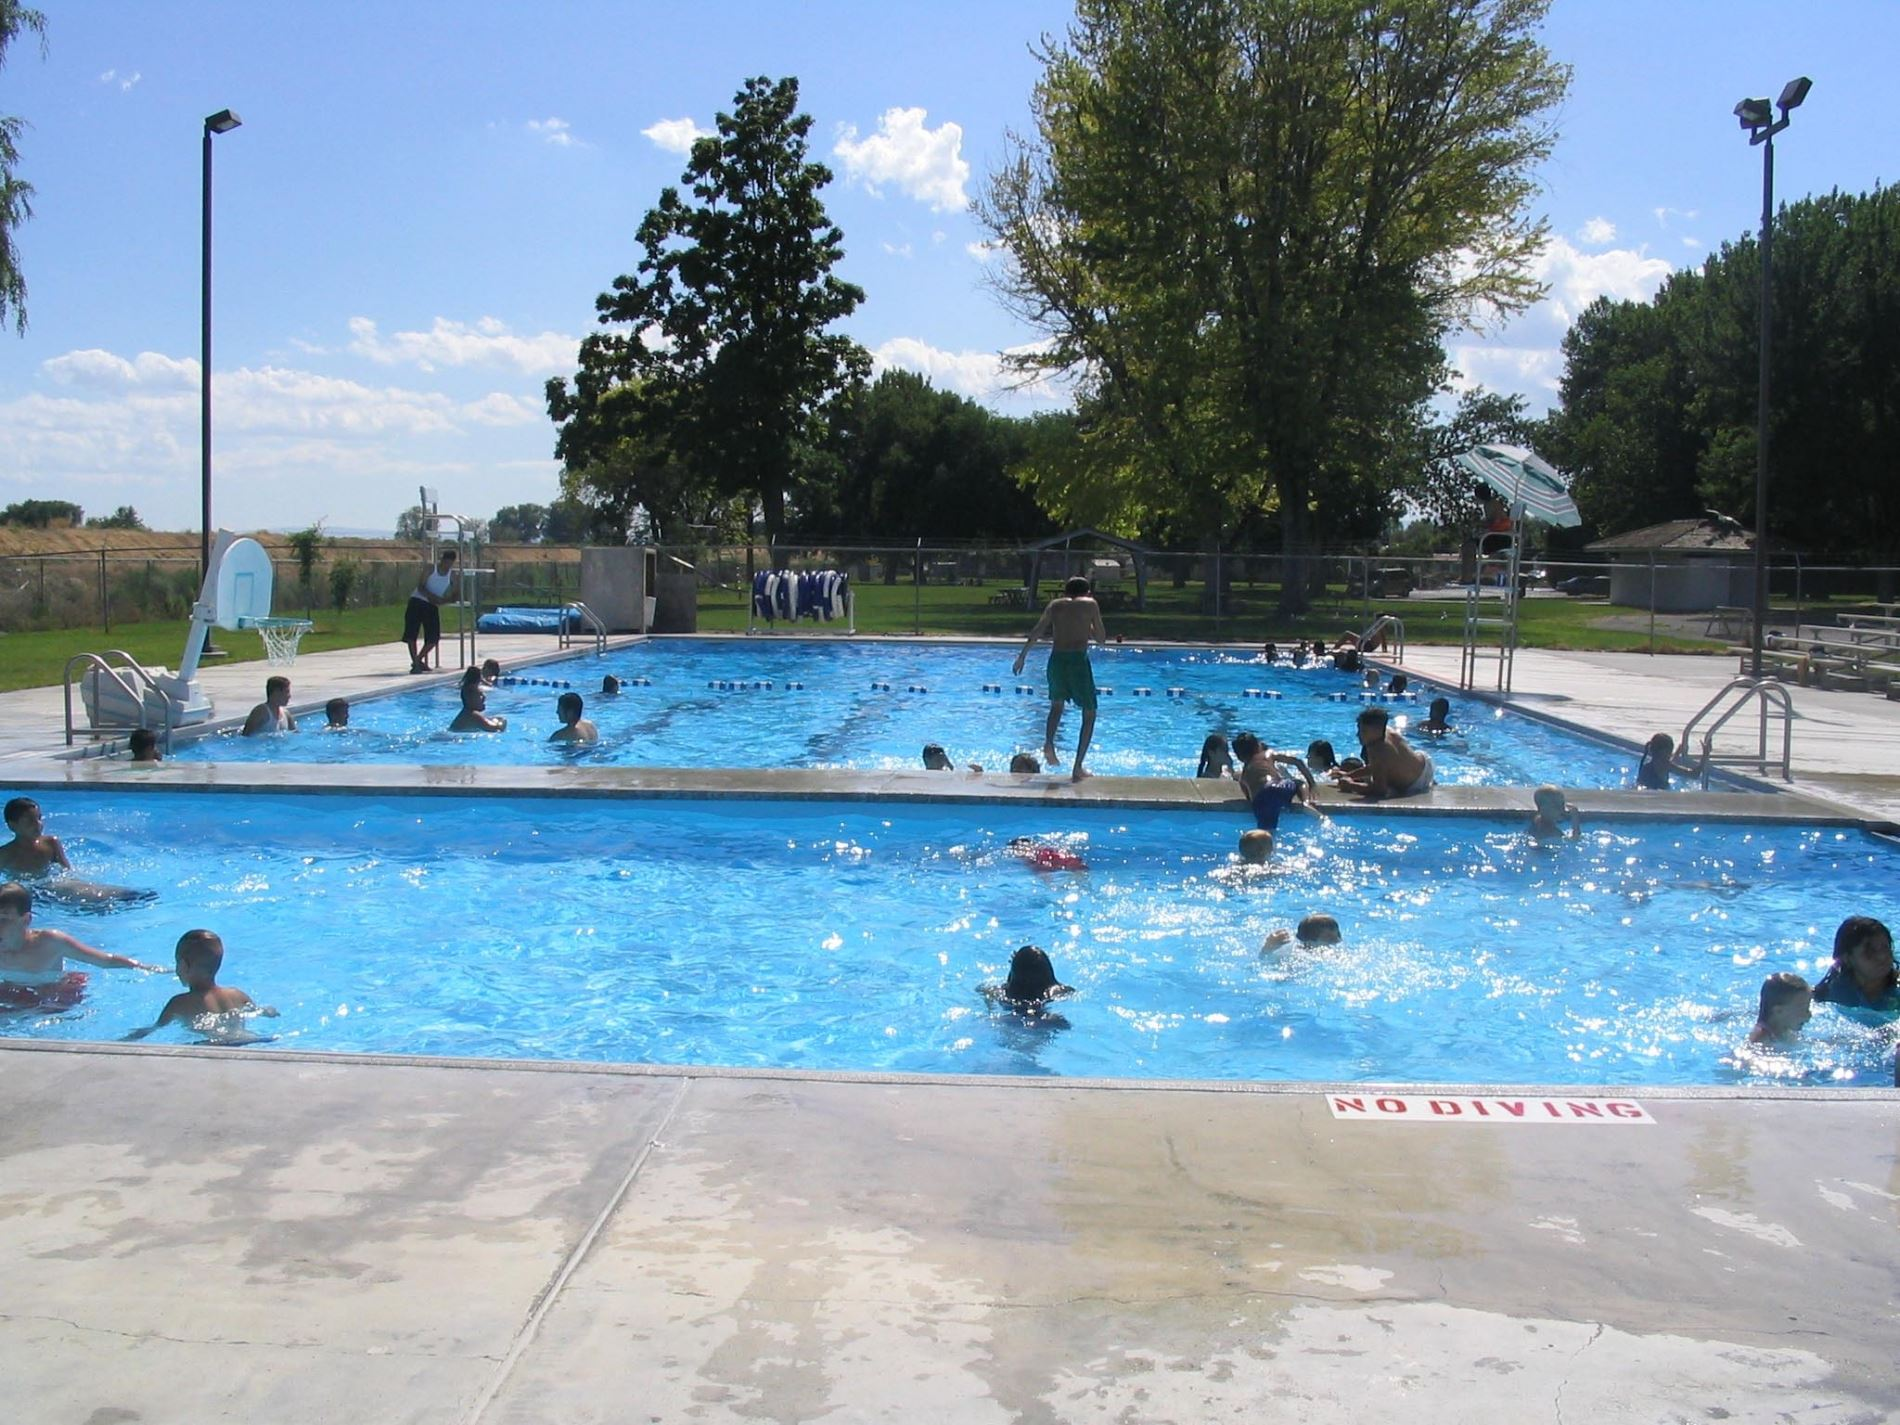 Many people playing in the pool